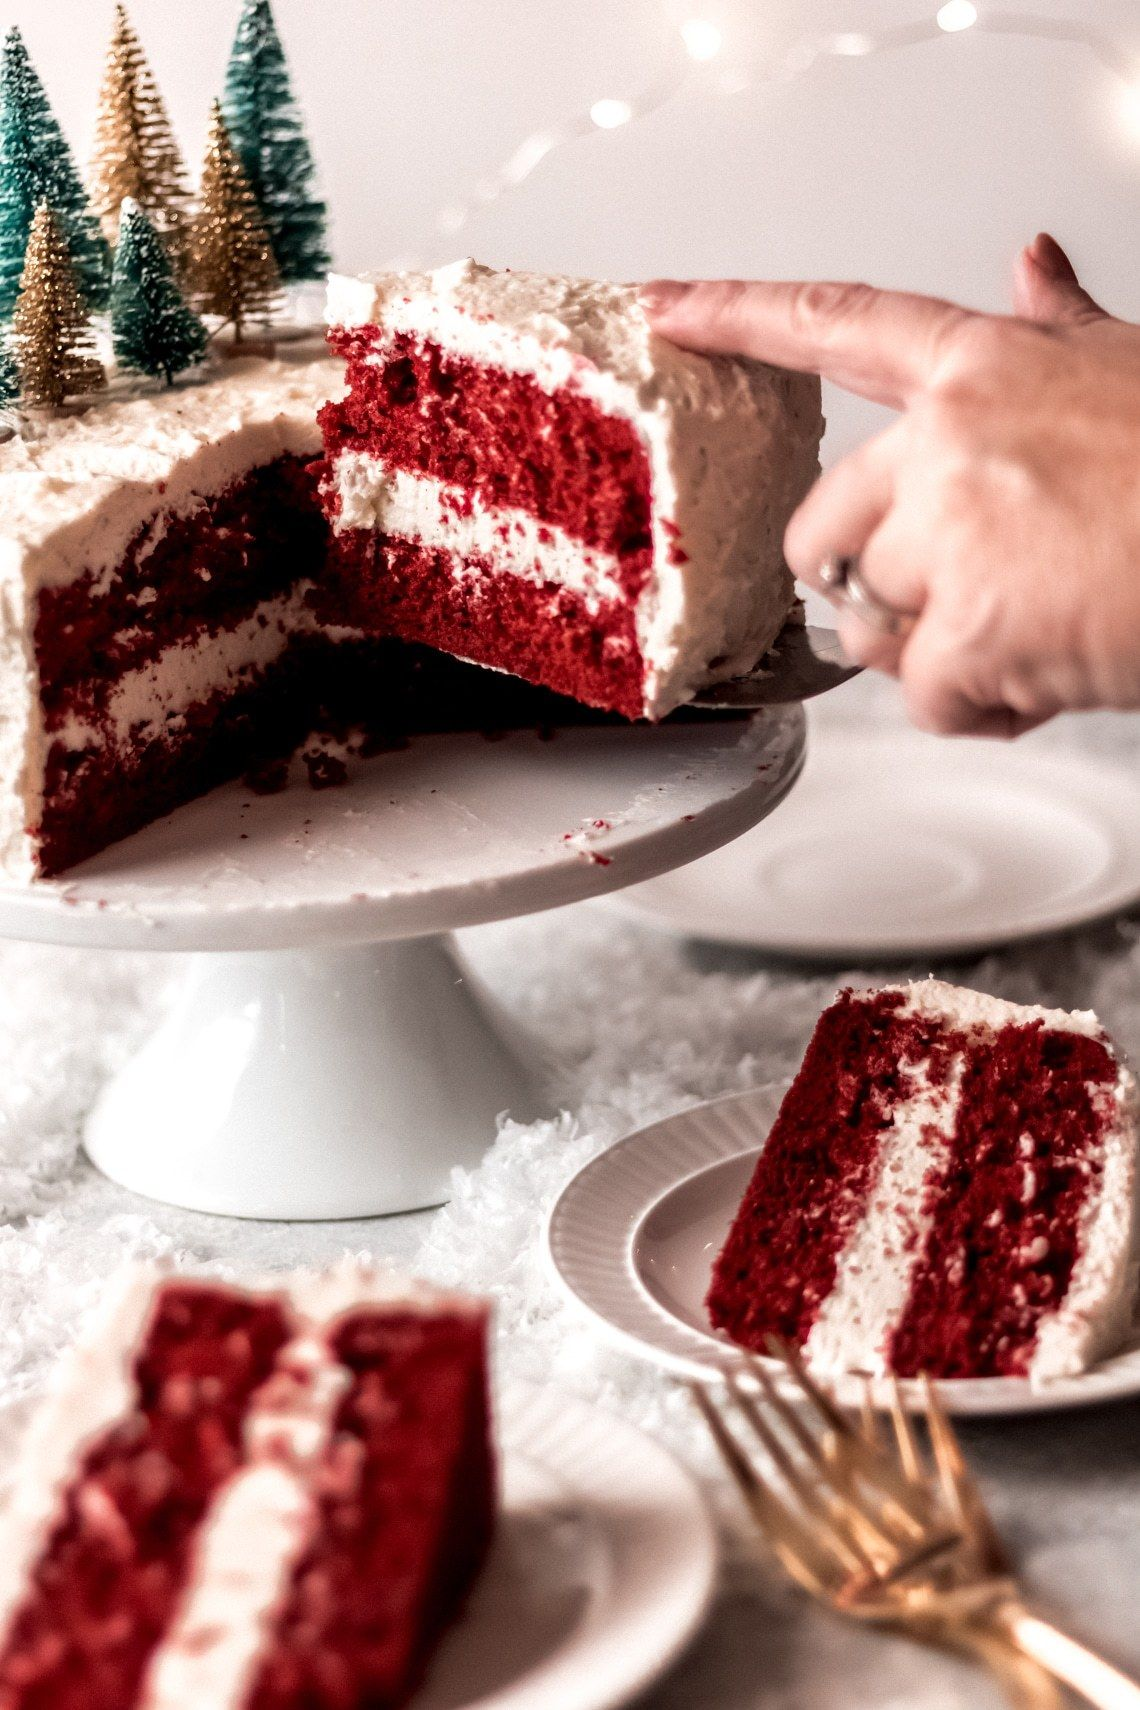 Red Velvet Cake With Butter Roux Frosting Recipe Velvet Cake Magic Cake Recipes Red Velvet Cake